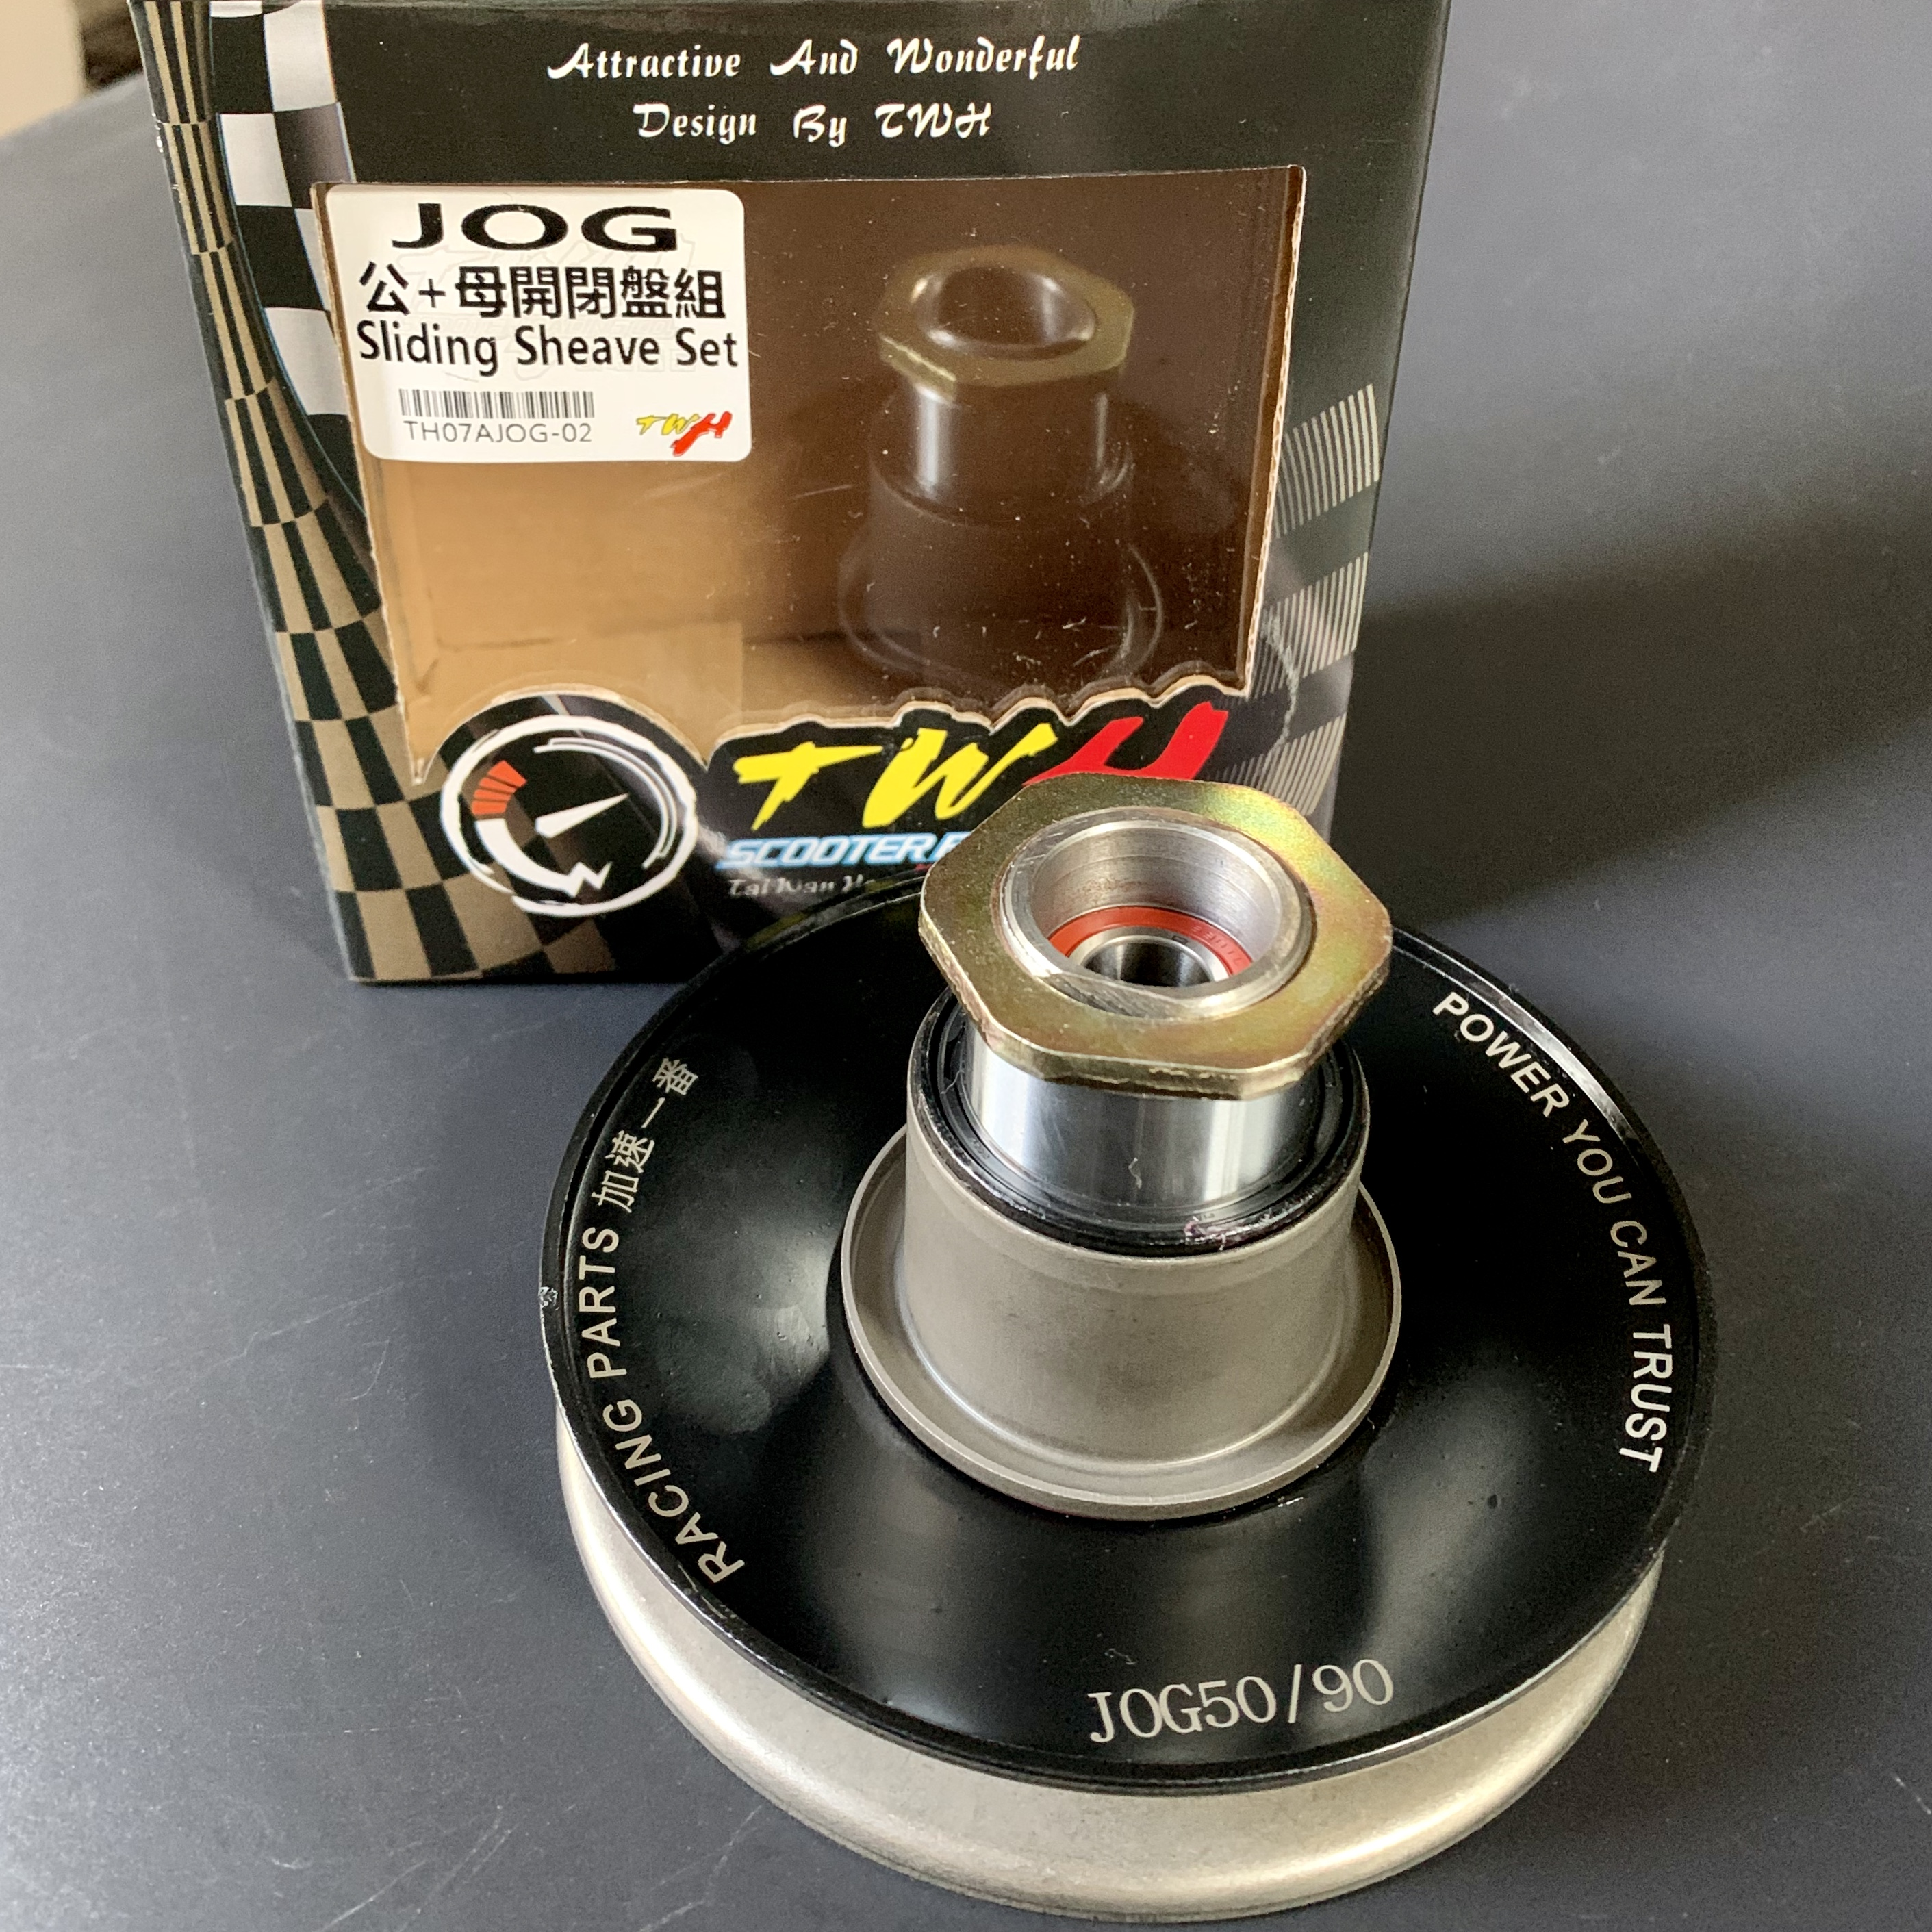 Torque Driver JOG50 JOG100 MIO115 BWS100 RS100 AXIS100 Sport Pulleys Sliding Sheave Racing Tuning Parts Jog Bws 50 90 100